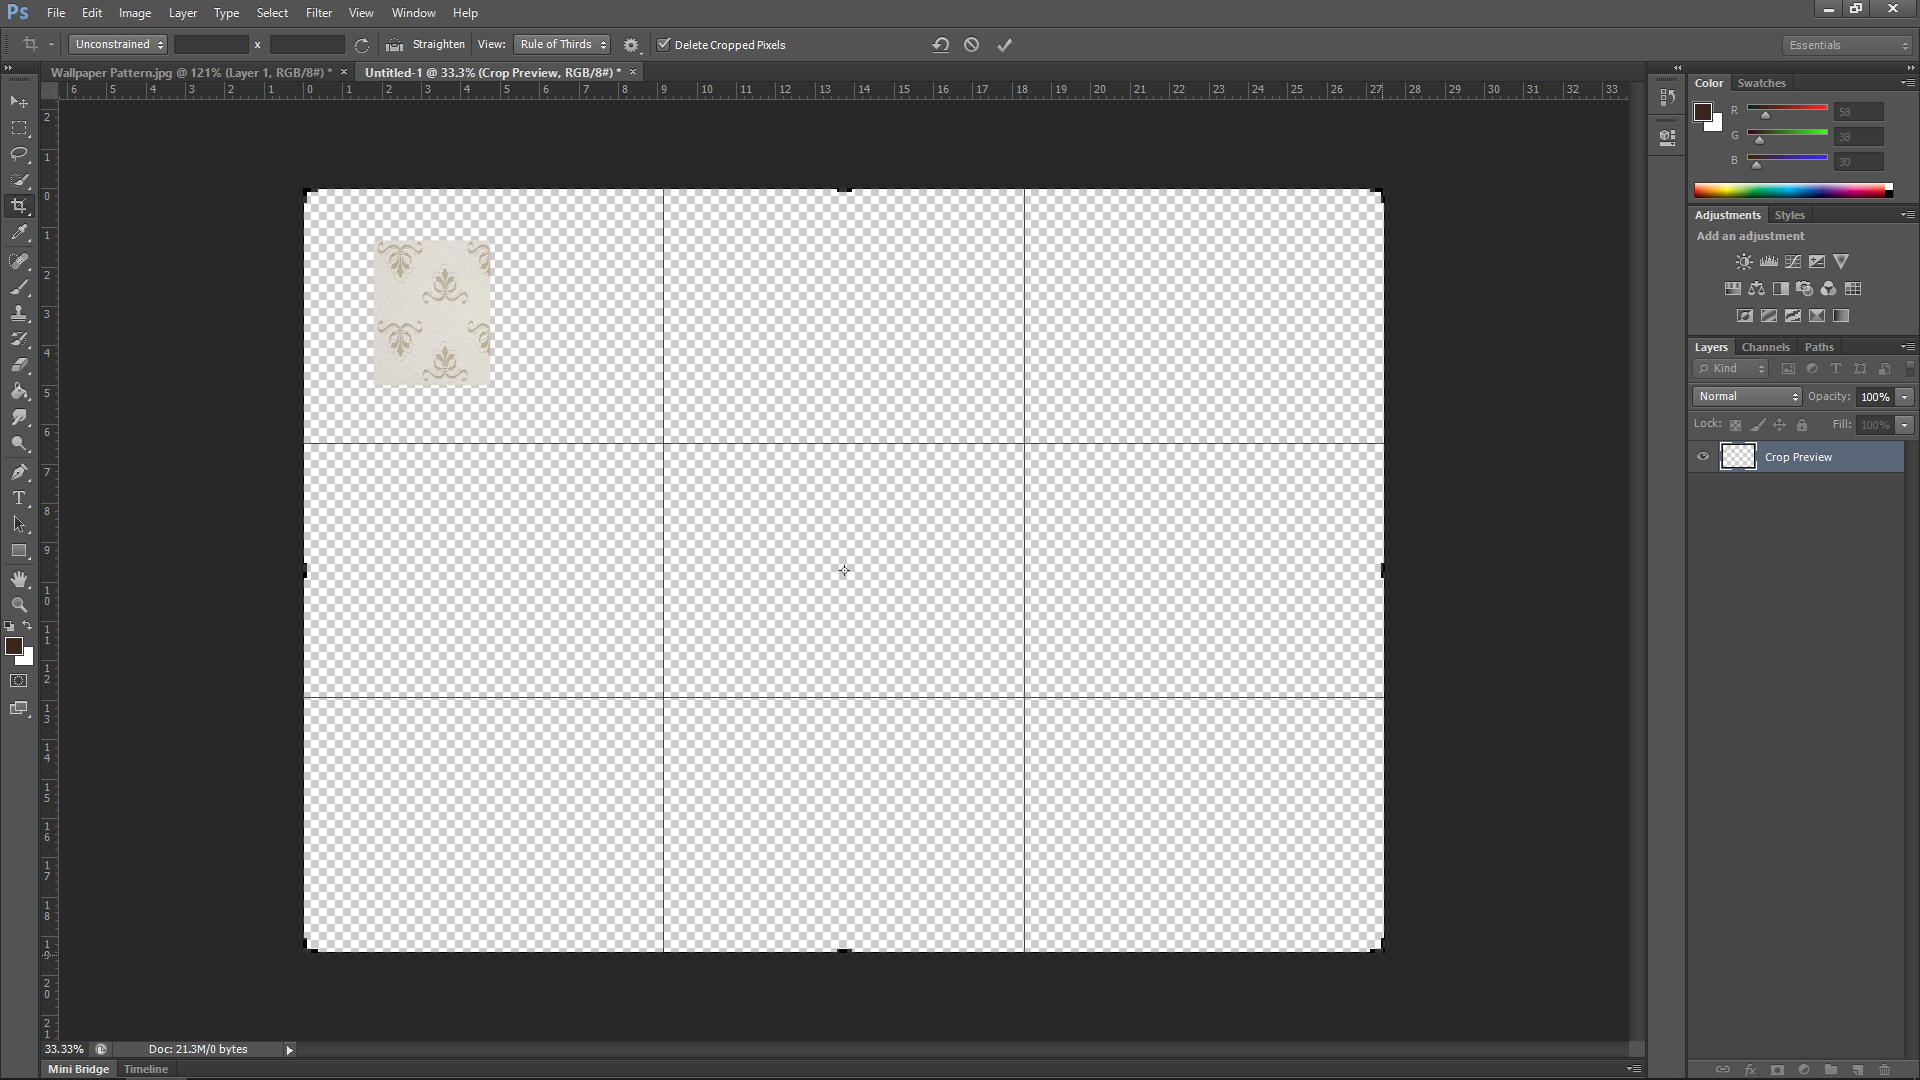 Adding Wallpaper in Photoshop